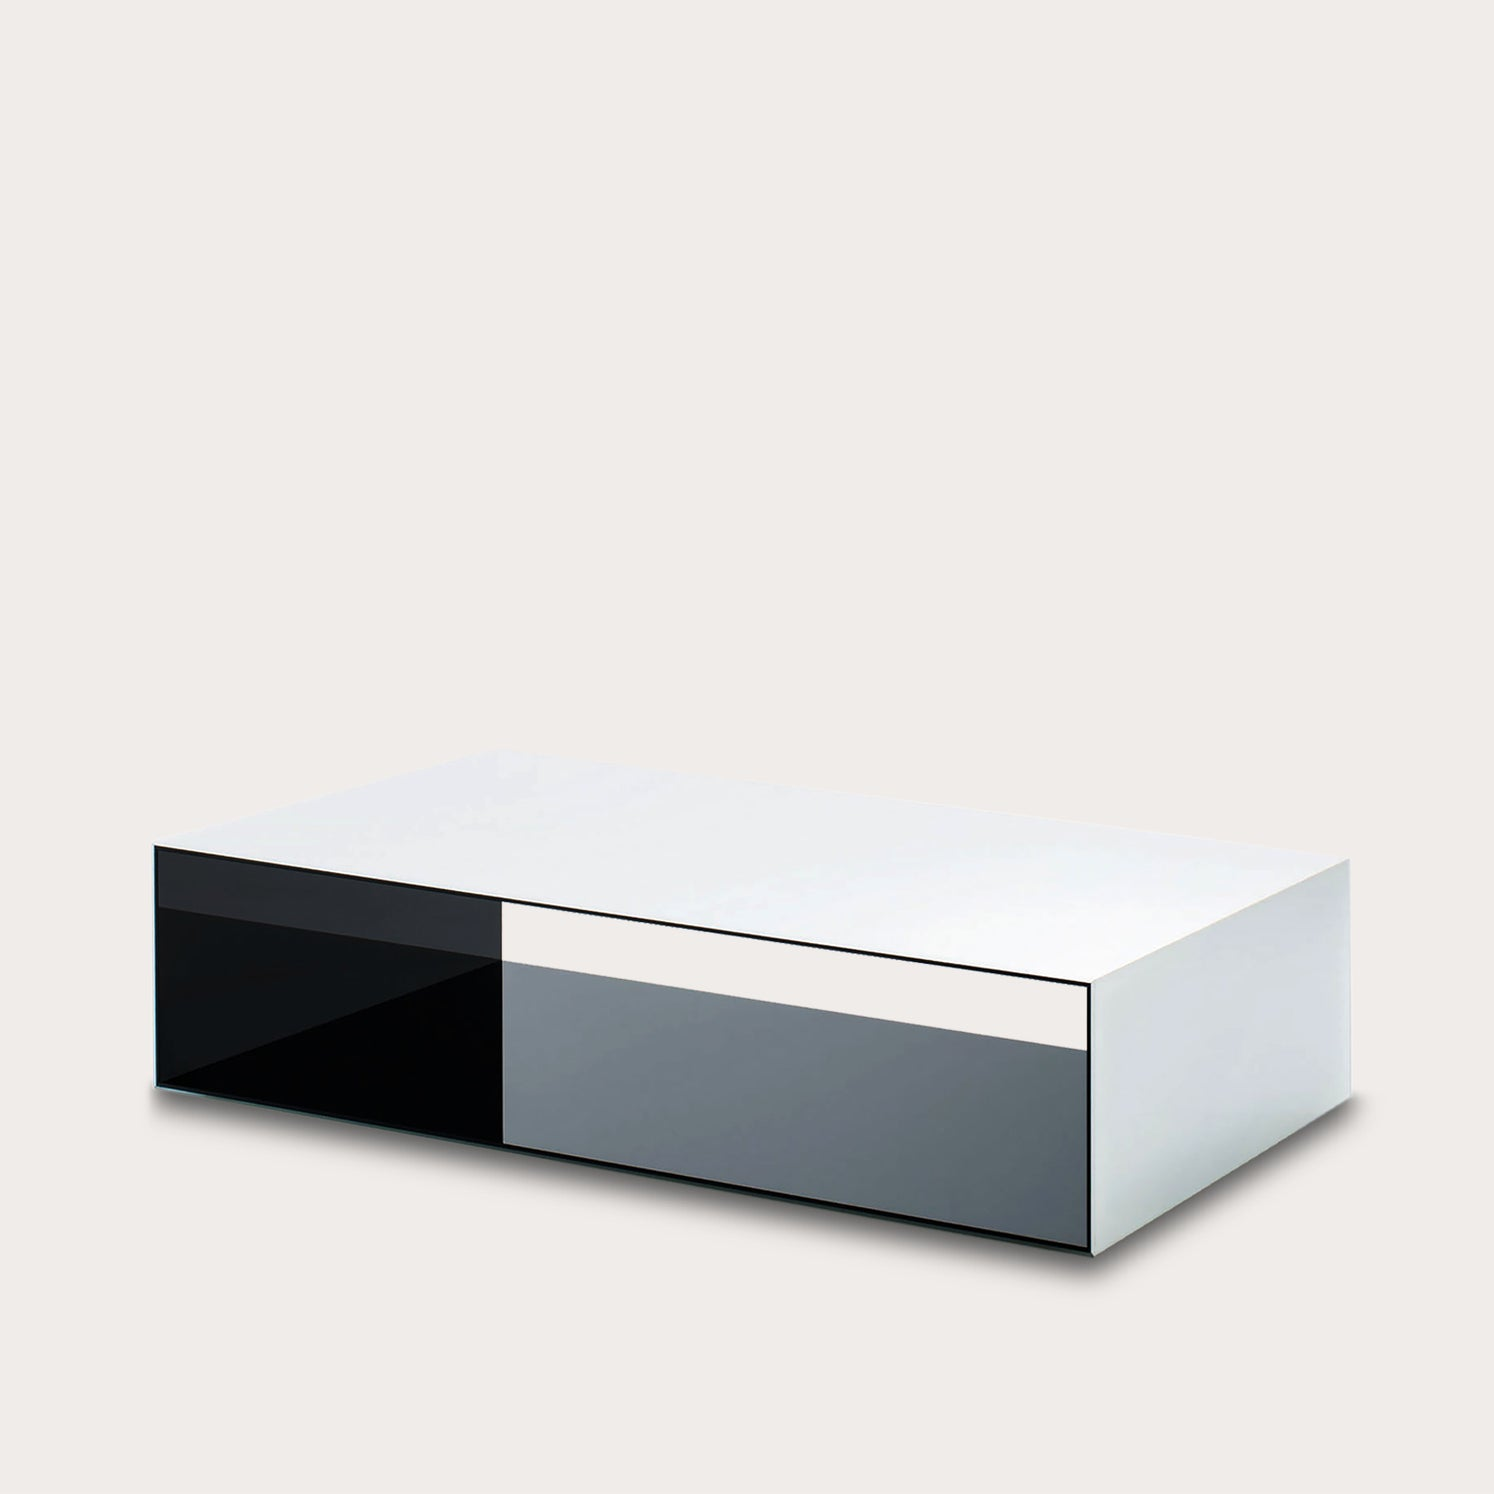 Sio2 Tunnel Tables Piero Lissoni Designer Furniture Sku: 288-230-10160